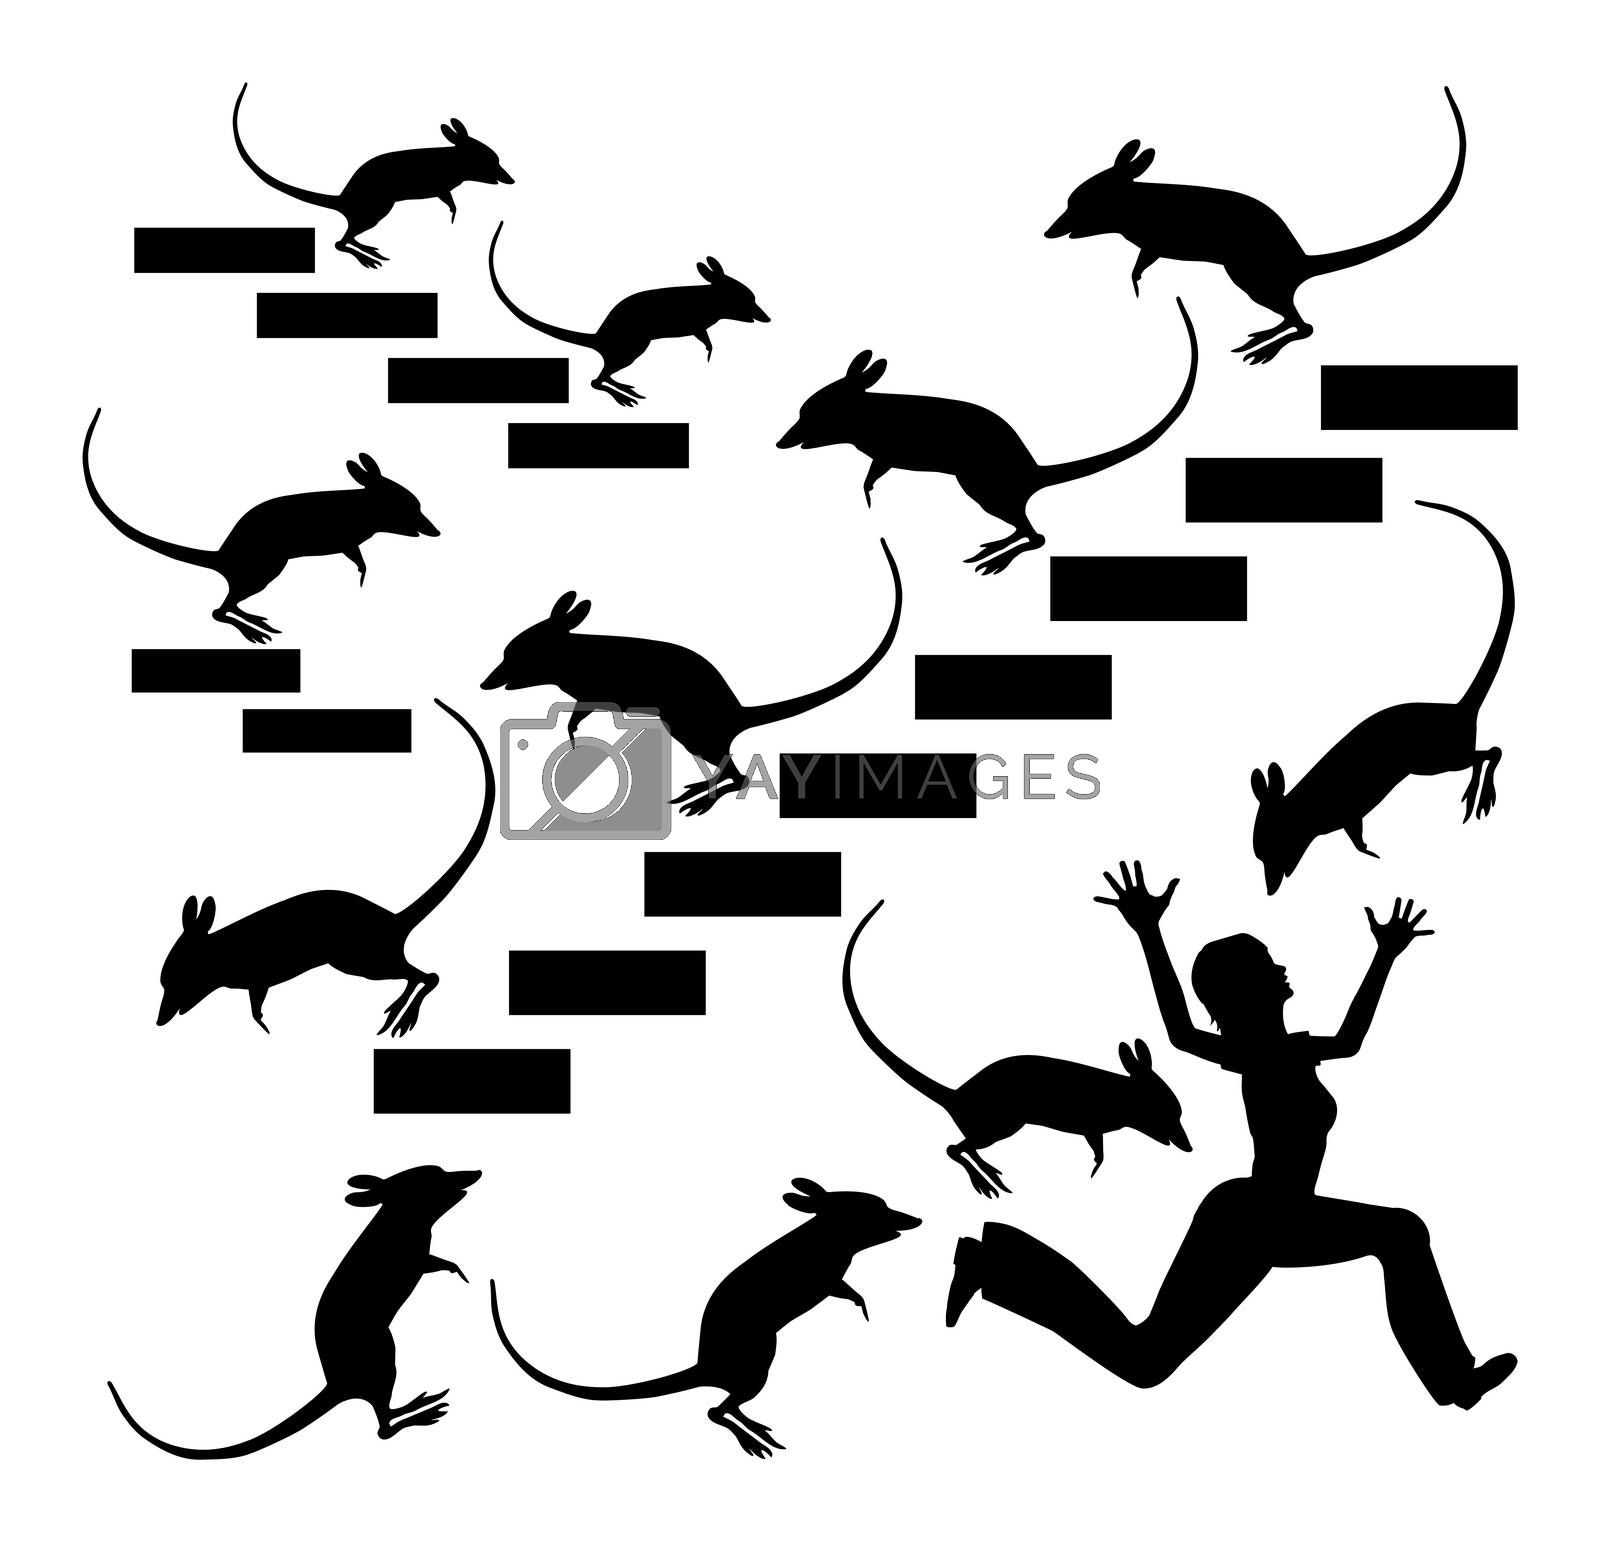 Humorous concept sign of a woman in panic suffering from mice and rat phobia